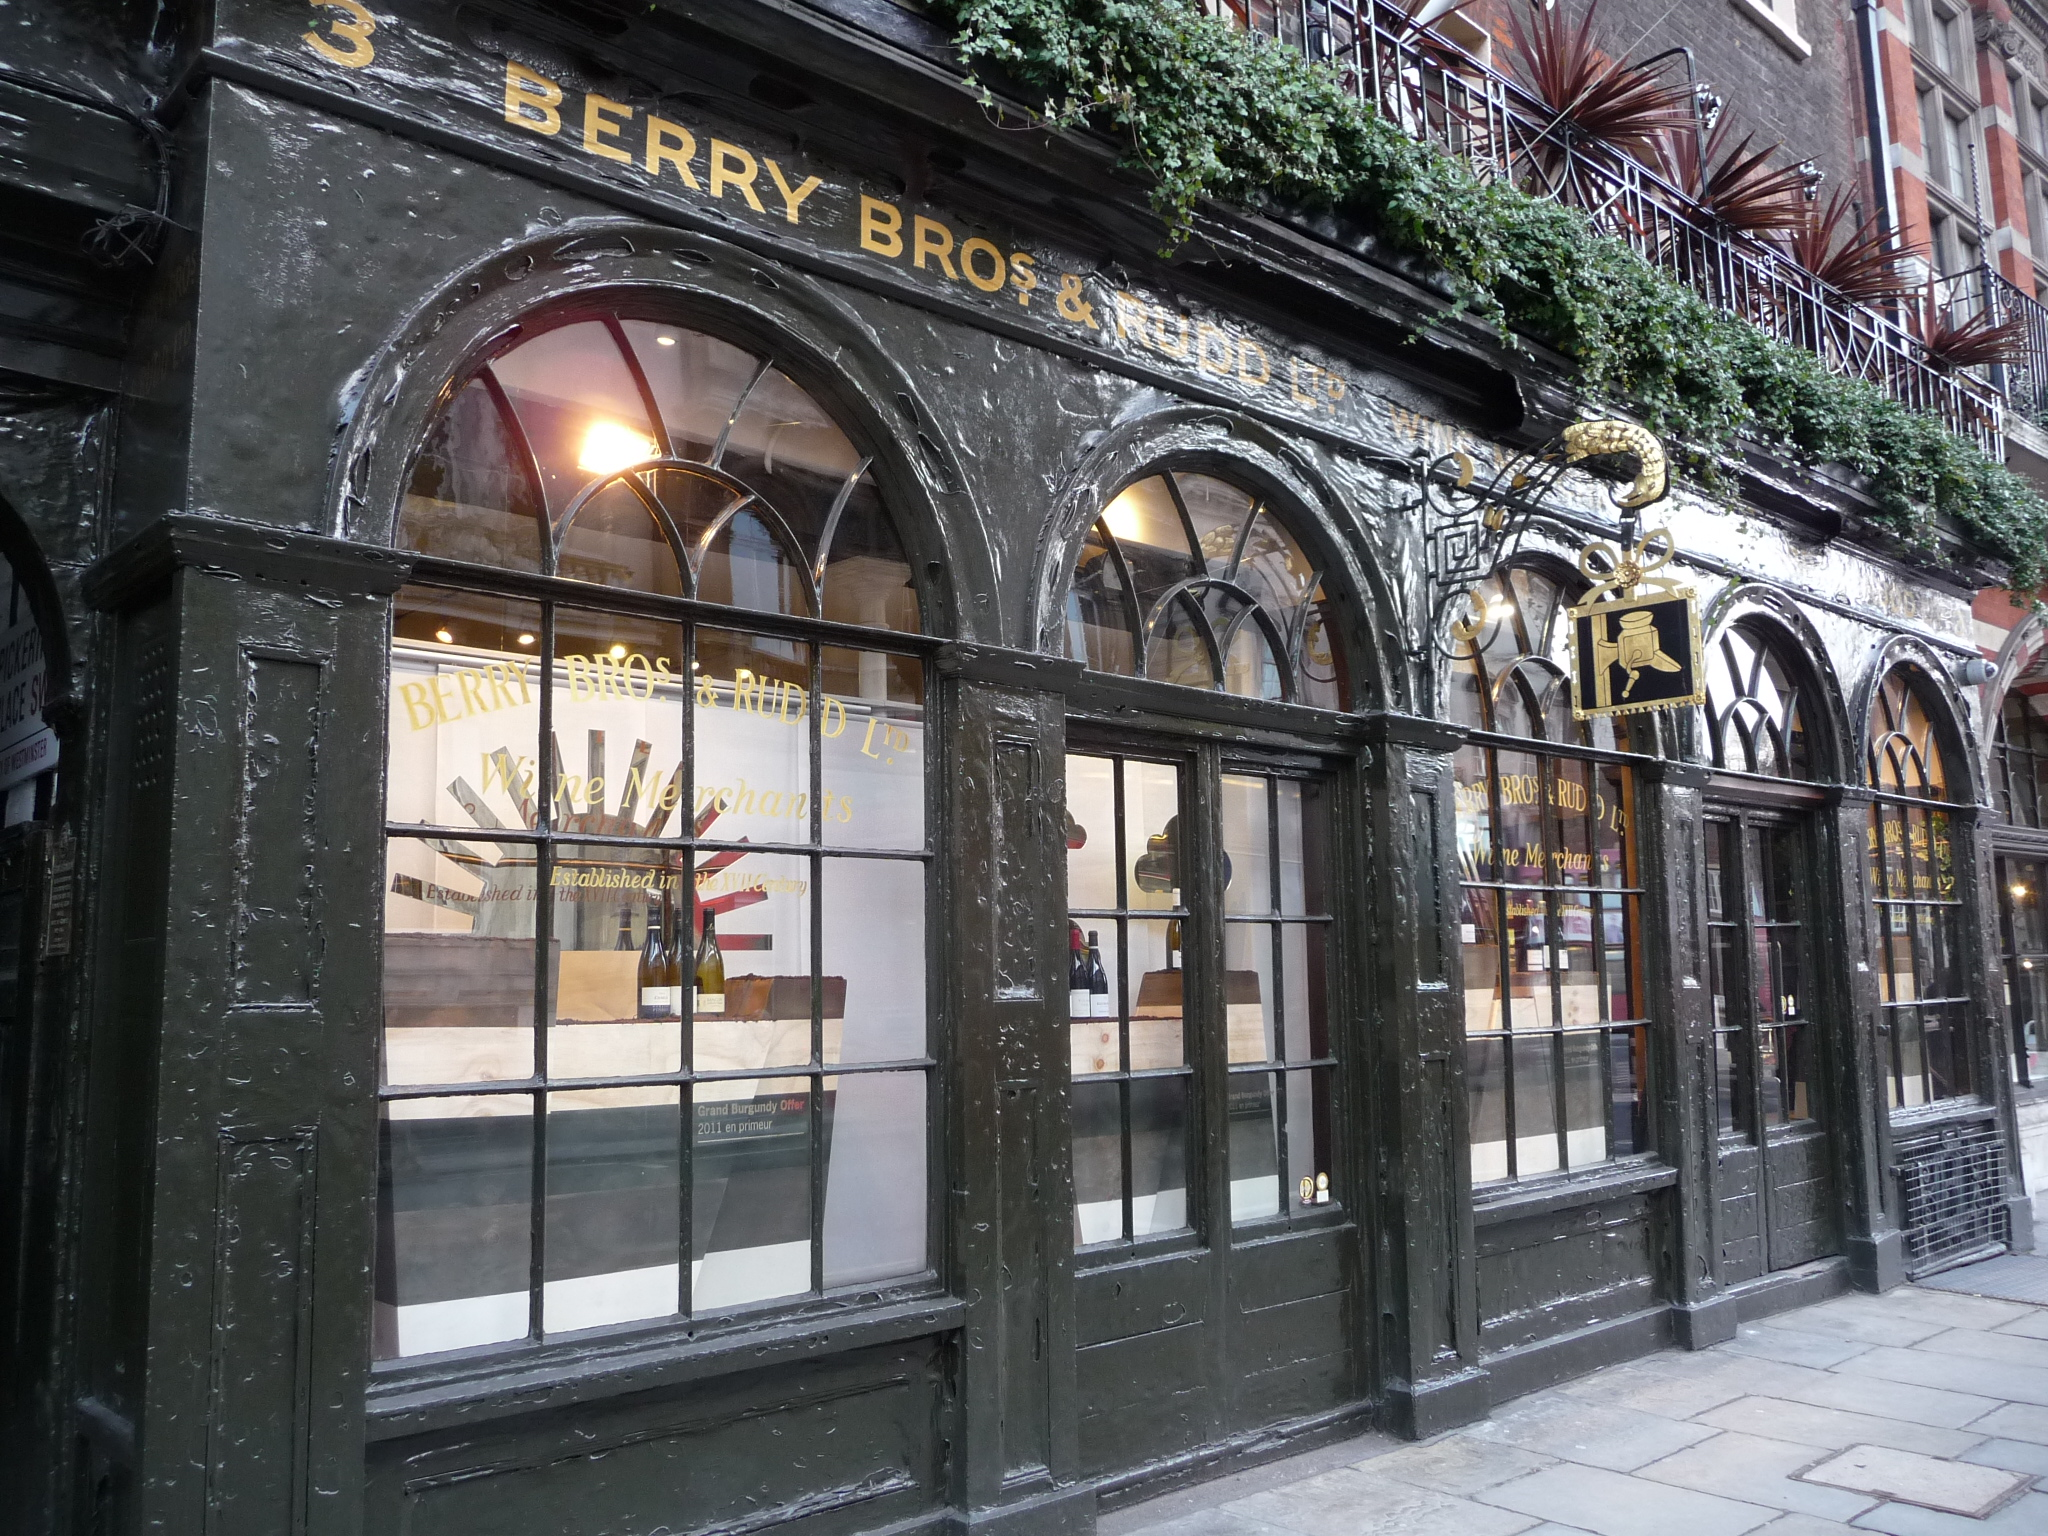 Berry Bros., one of London's traditional shops